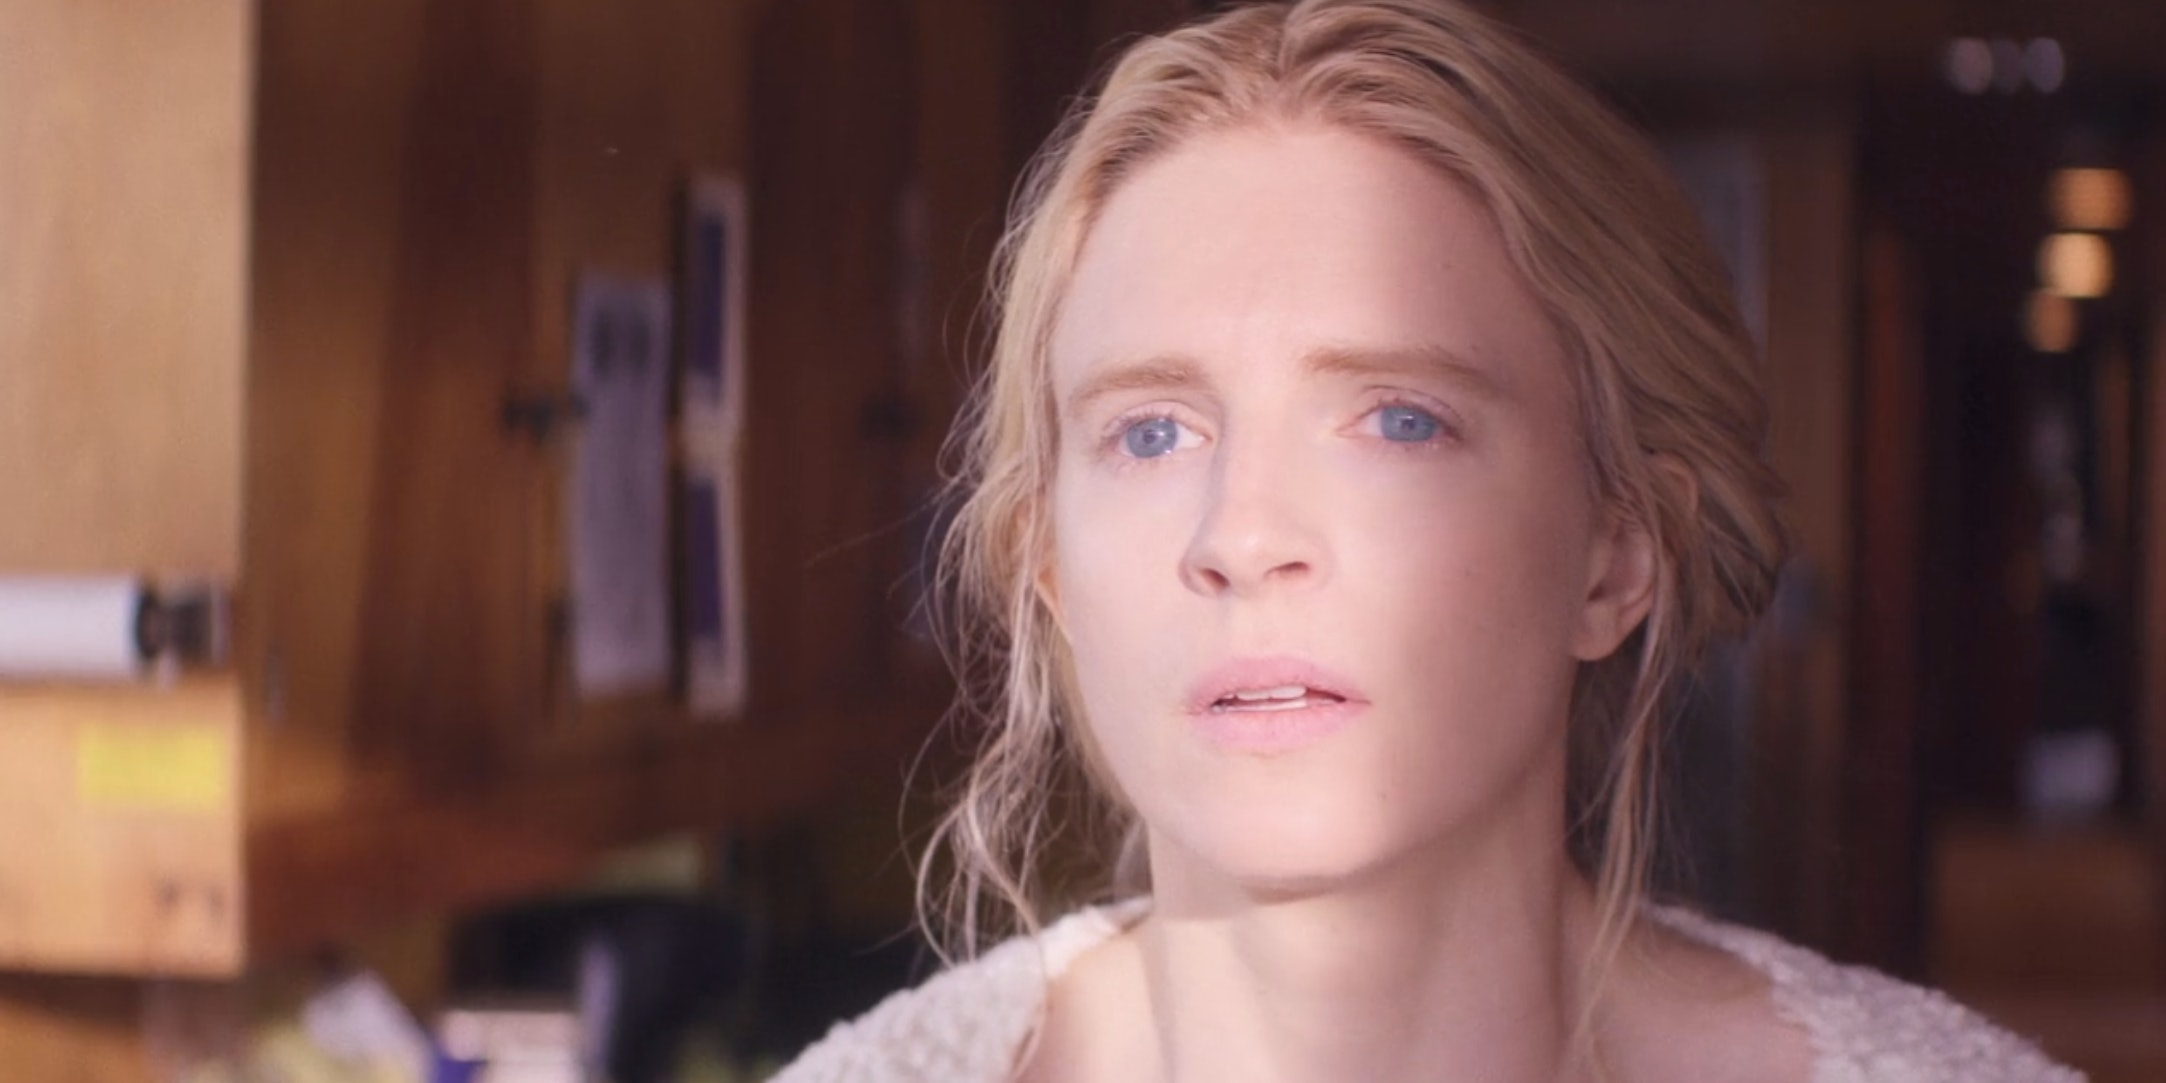 What Does 'The OA' Mean?